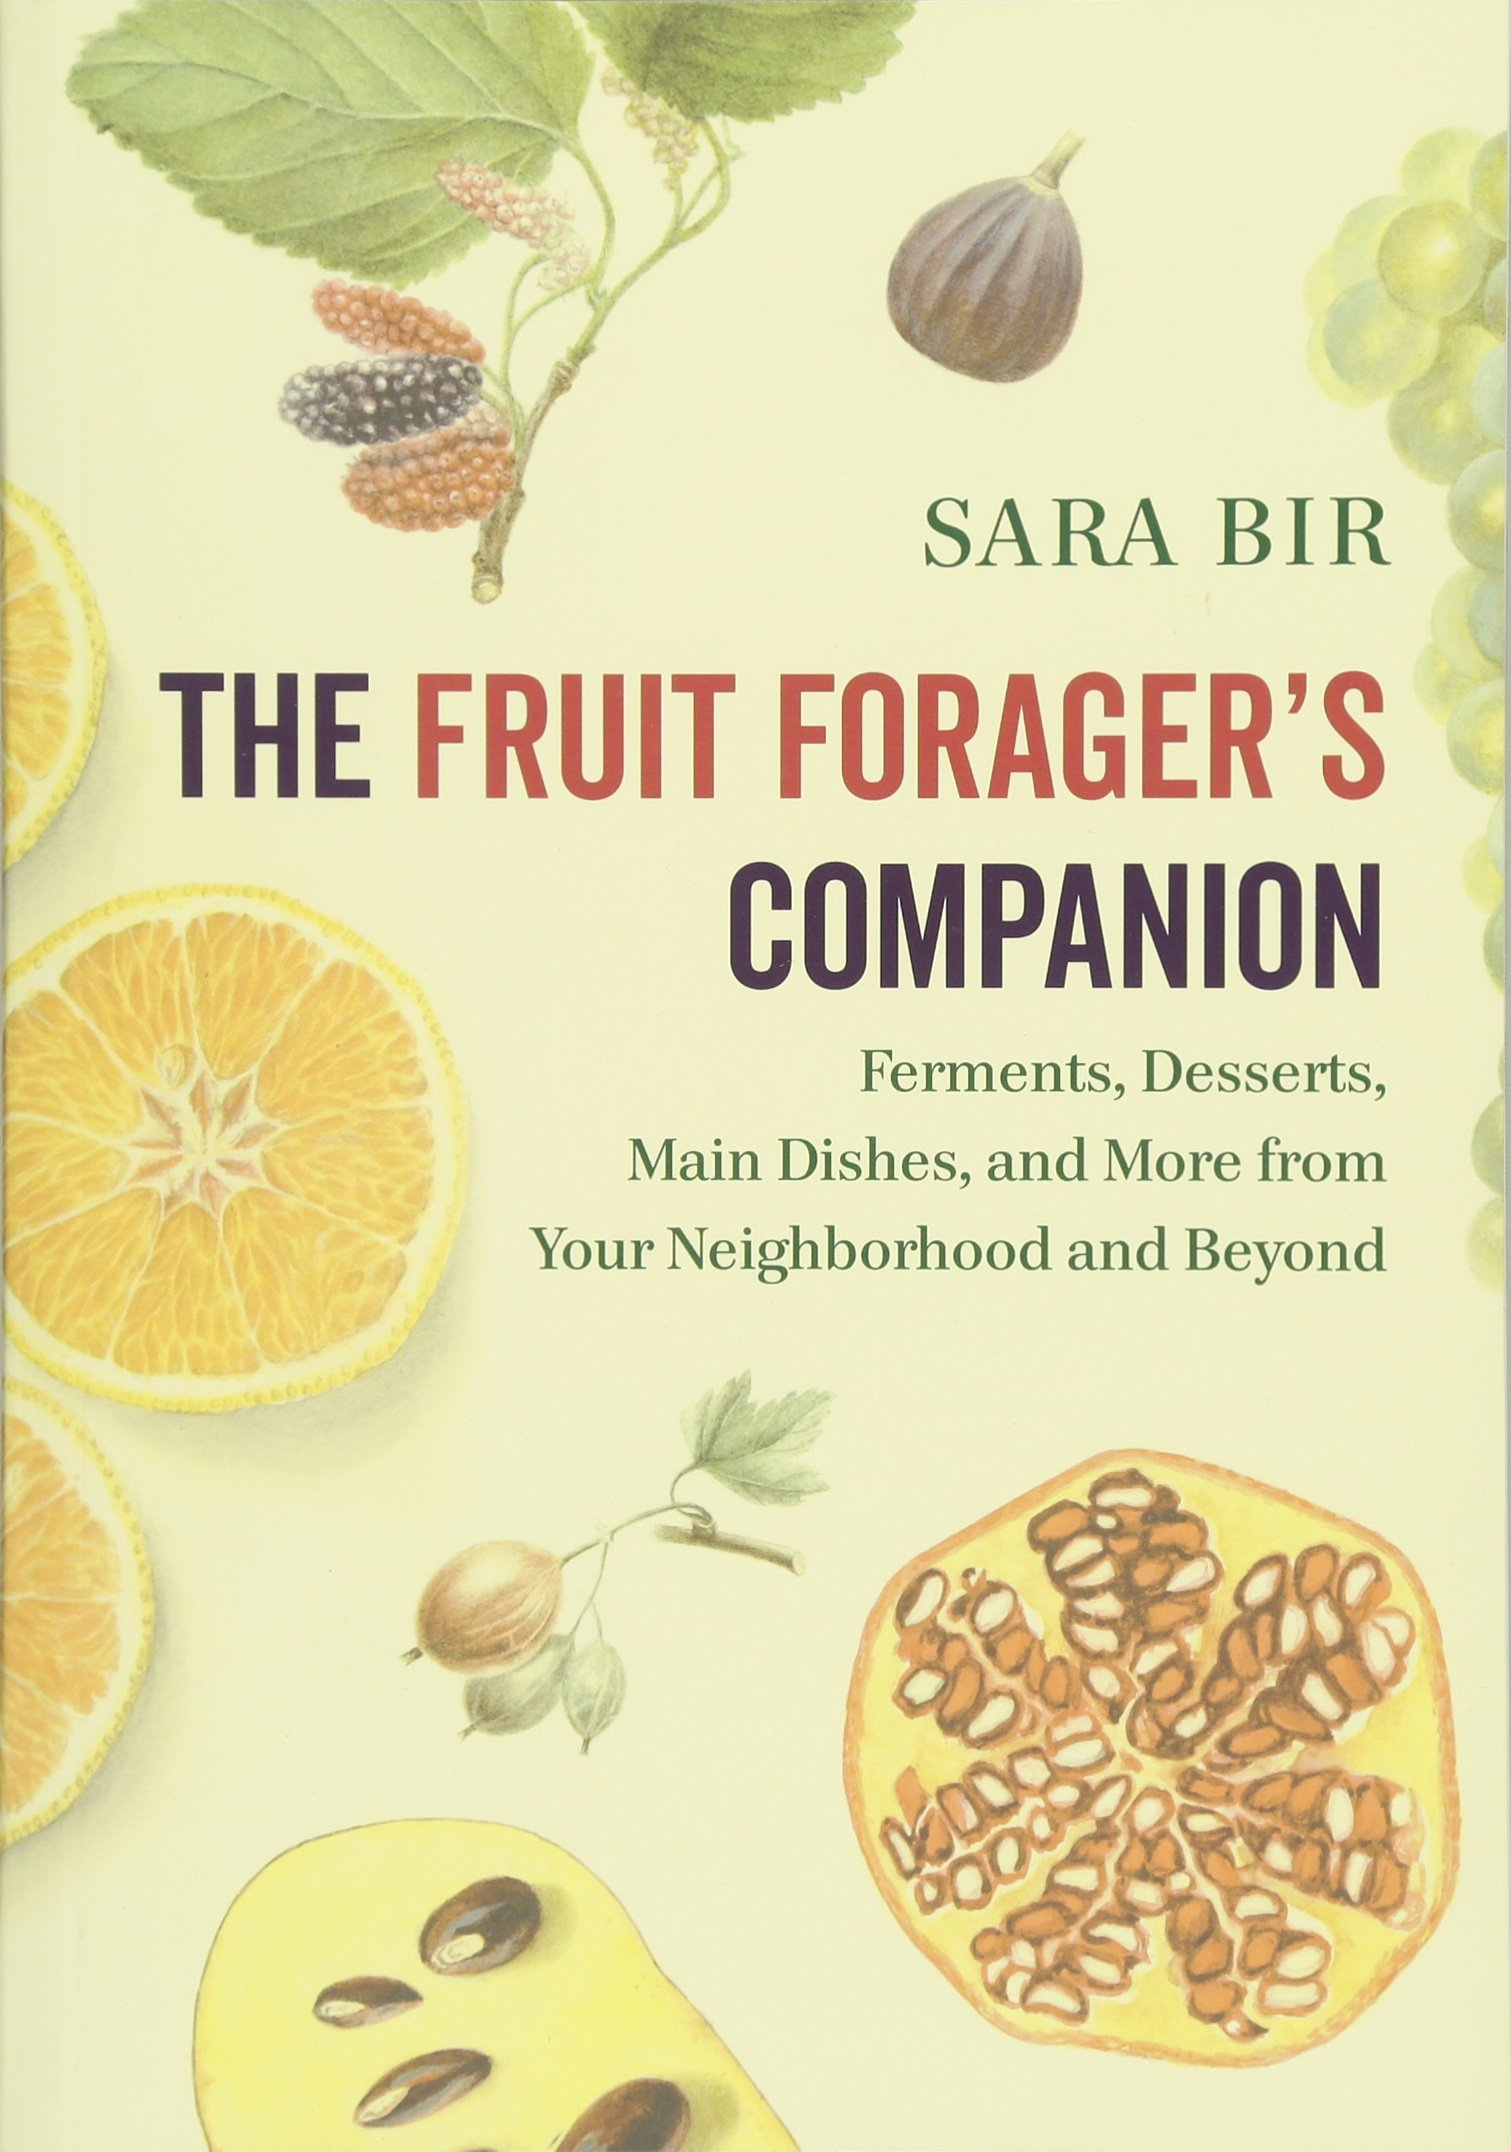 The Fruit Forager's Companion: Ferments, Desserts, Main Dishes, and More from Your Neighborhood and Beyond Paperback – June 5, 2018 Sara Bir Chelsea Green Publishing 1603587160 Plants - General